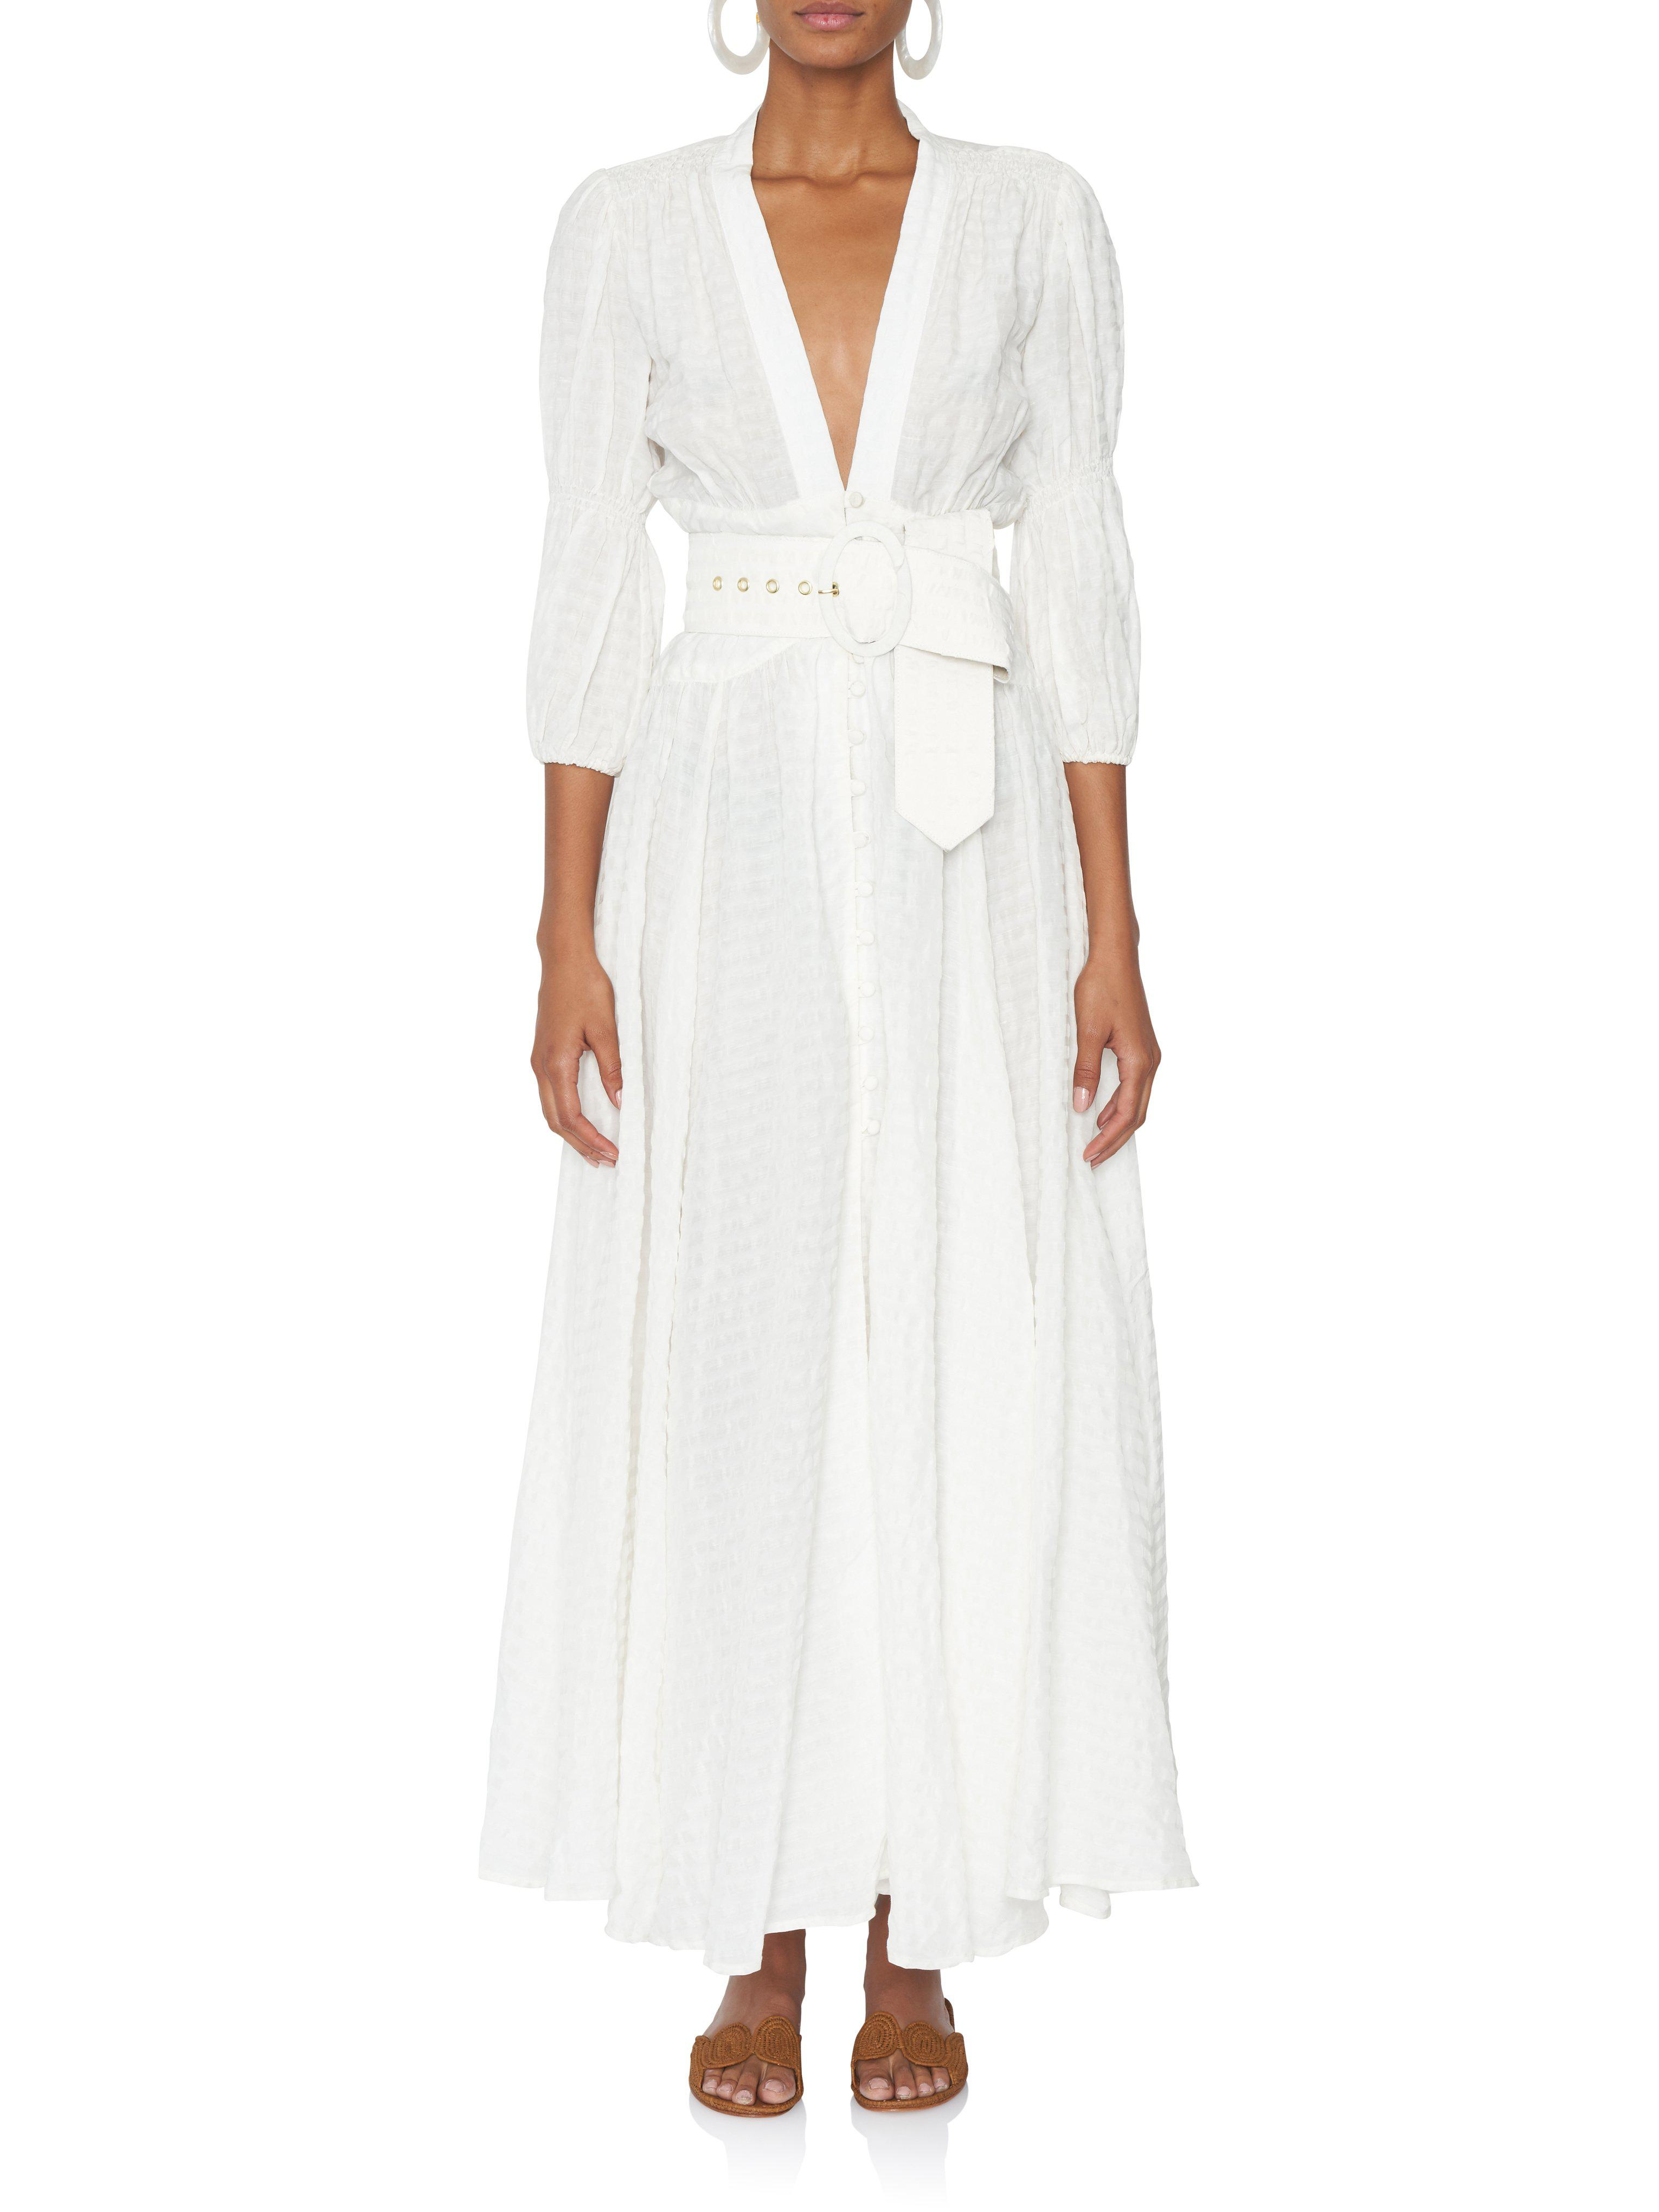 In Cult Eyelet Gaia White Lyst Dress Willow SHXPgWTWq